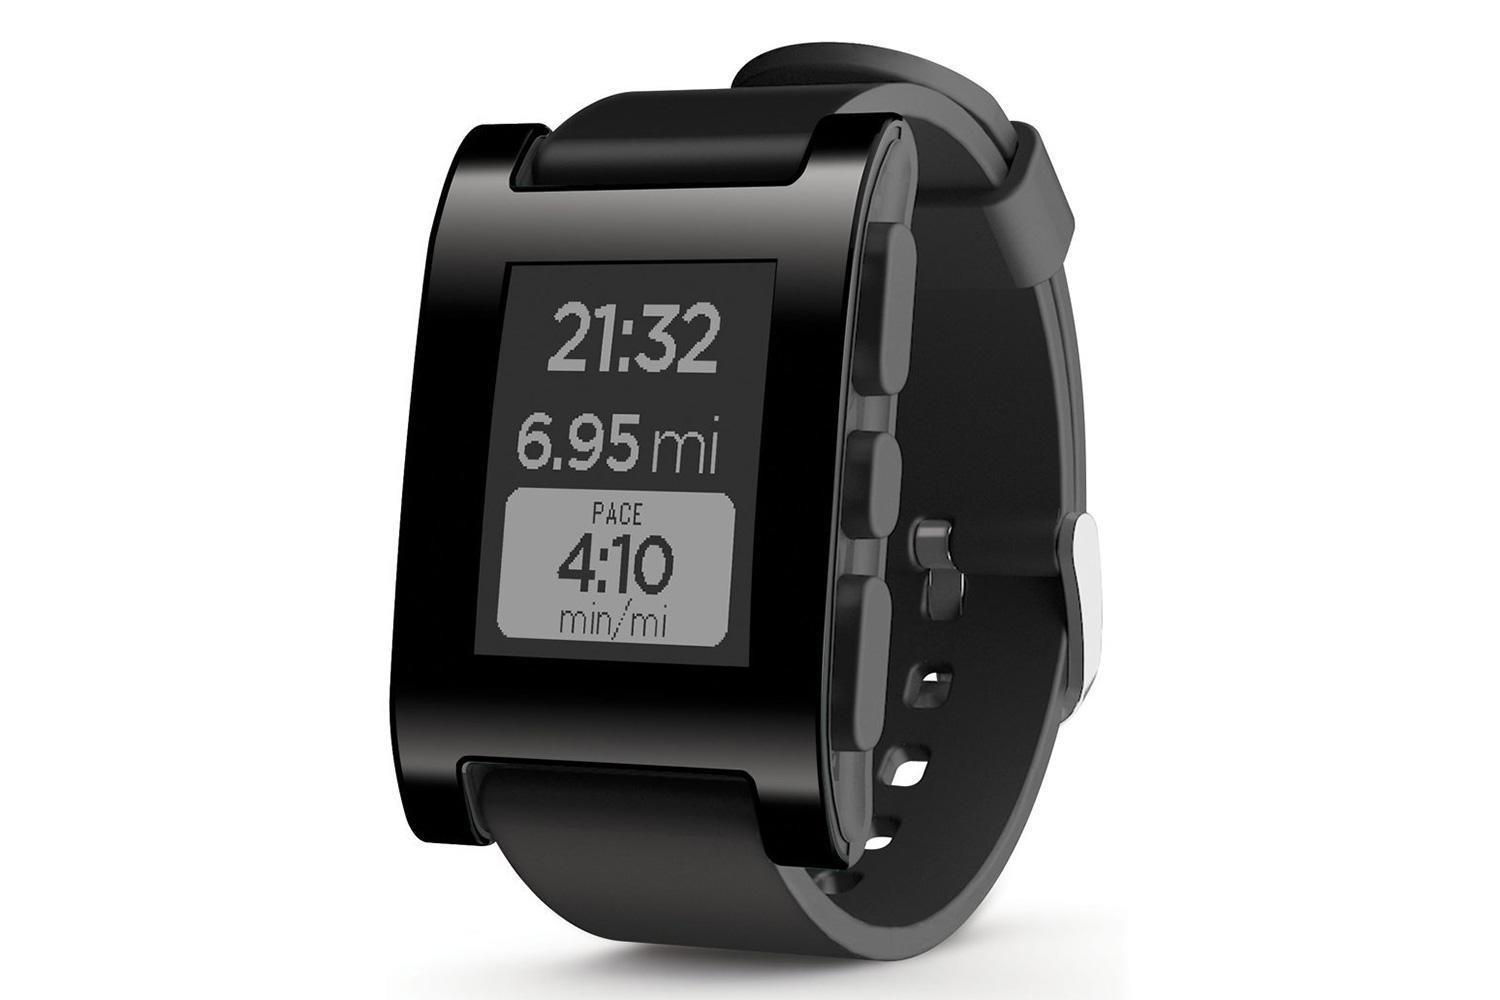 Pebble Smartwatch Sees Permanent Price Drop To $100 ...